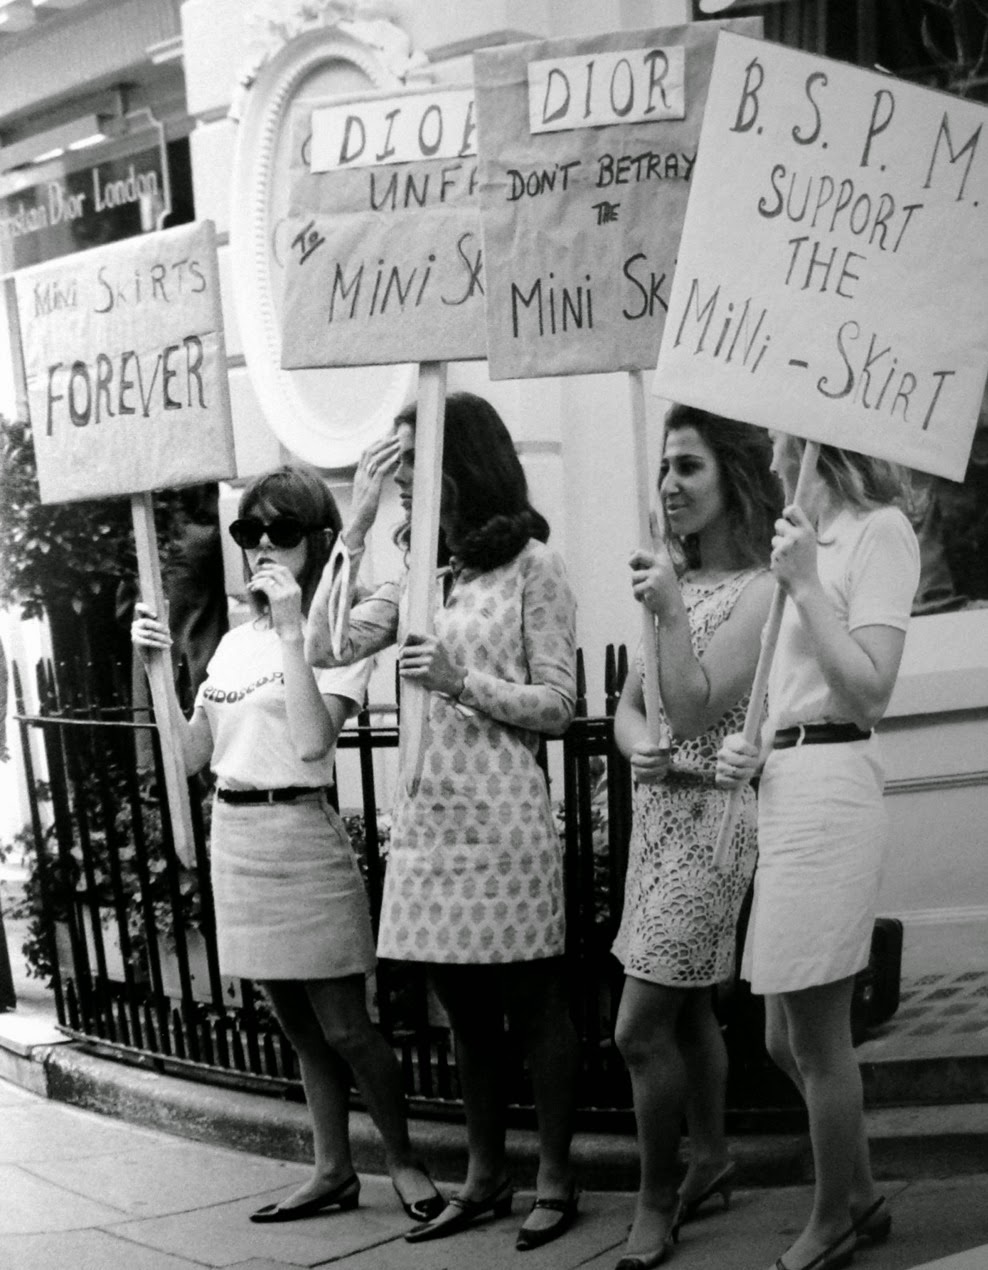 London Women Protesting for Mini-skirts, 1966 | That Eric Alper